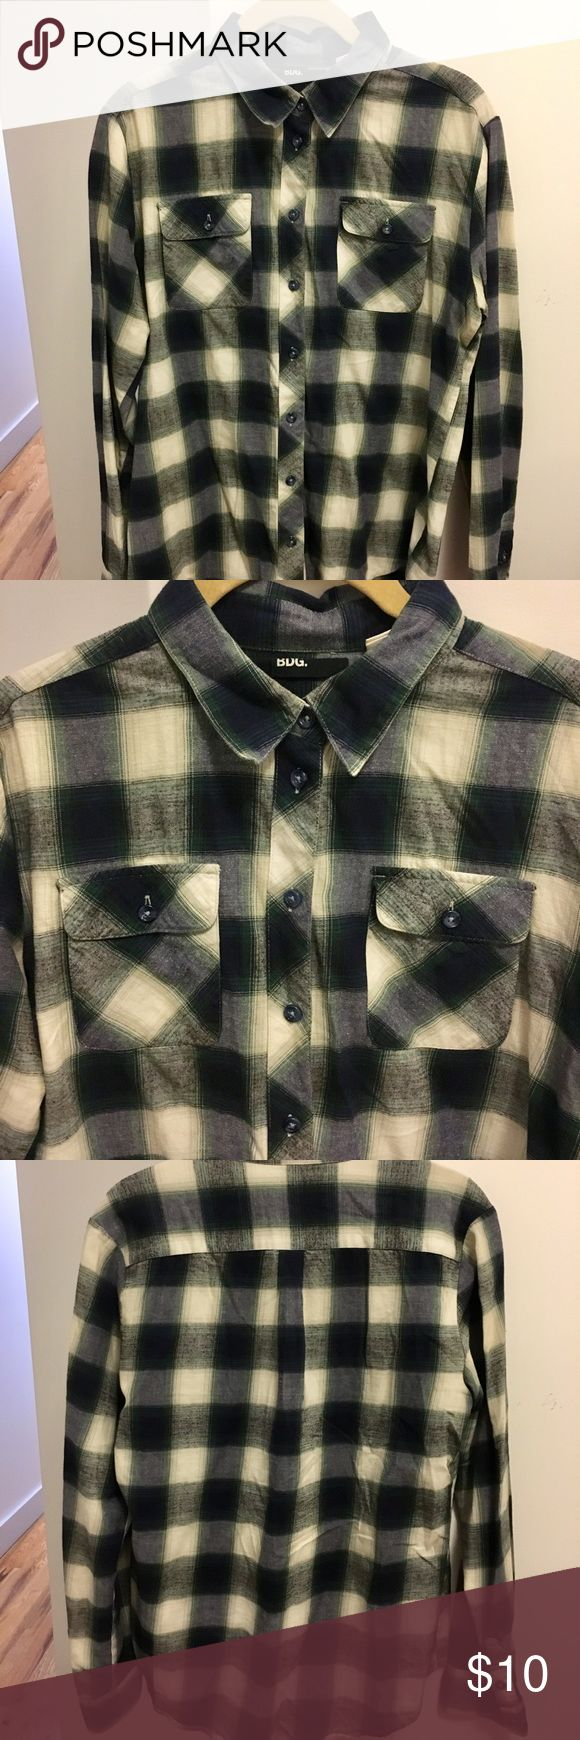 BDG long-sleeve flannel Cream, grey and dark green flannel shirt by BDG BDG Tops Button Down Shirts